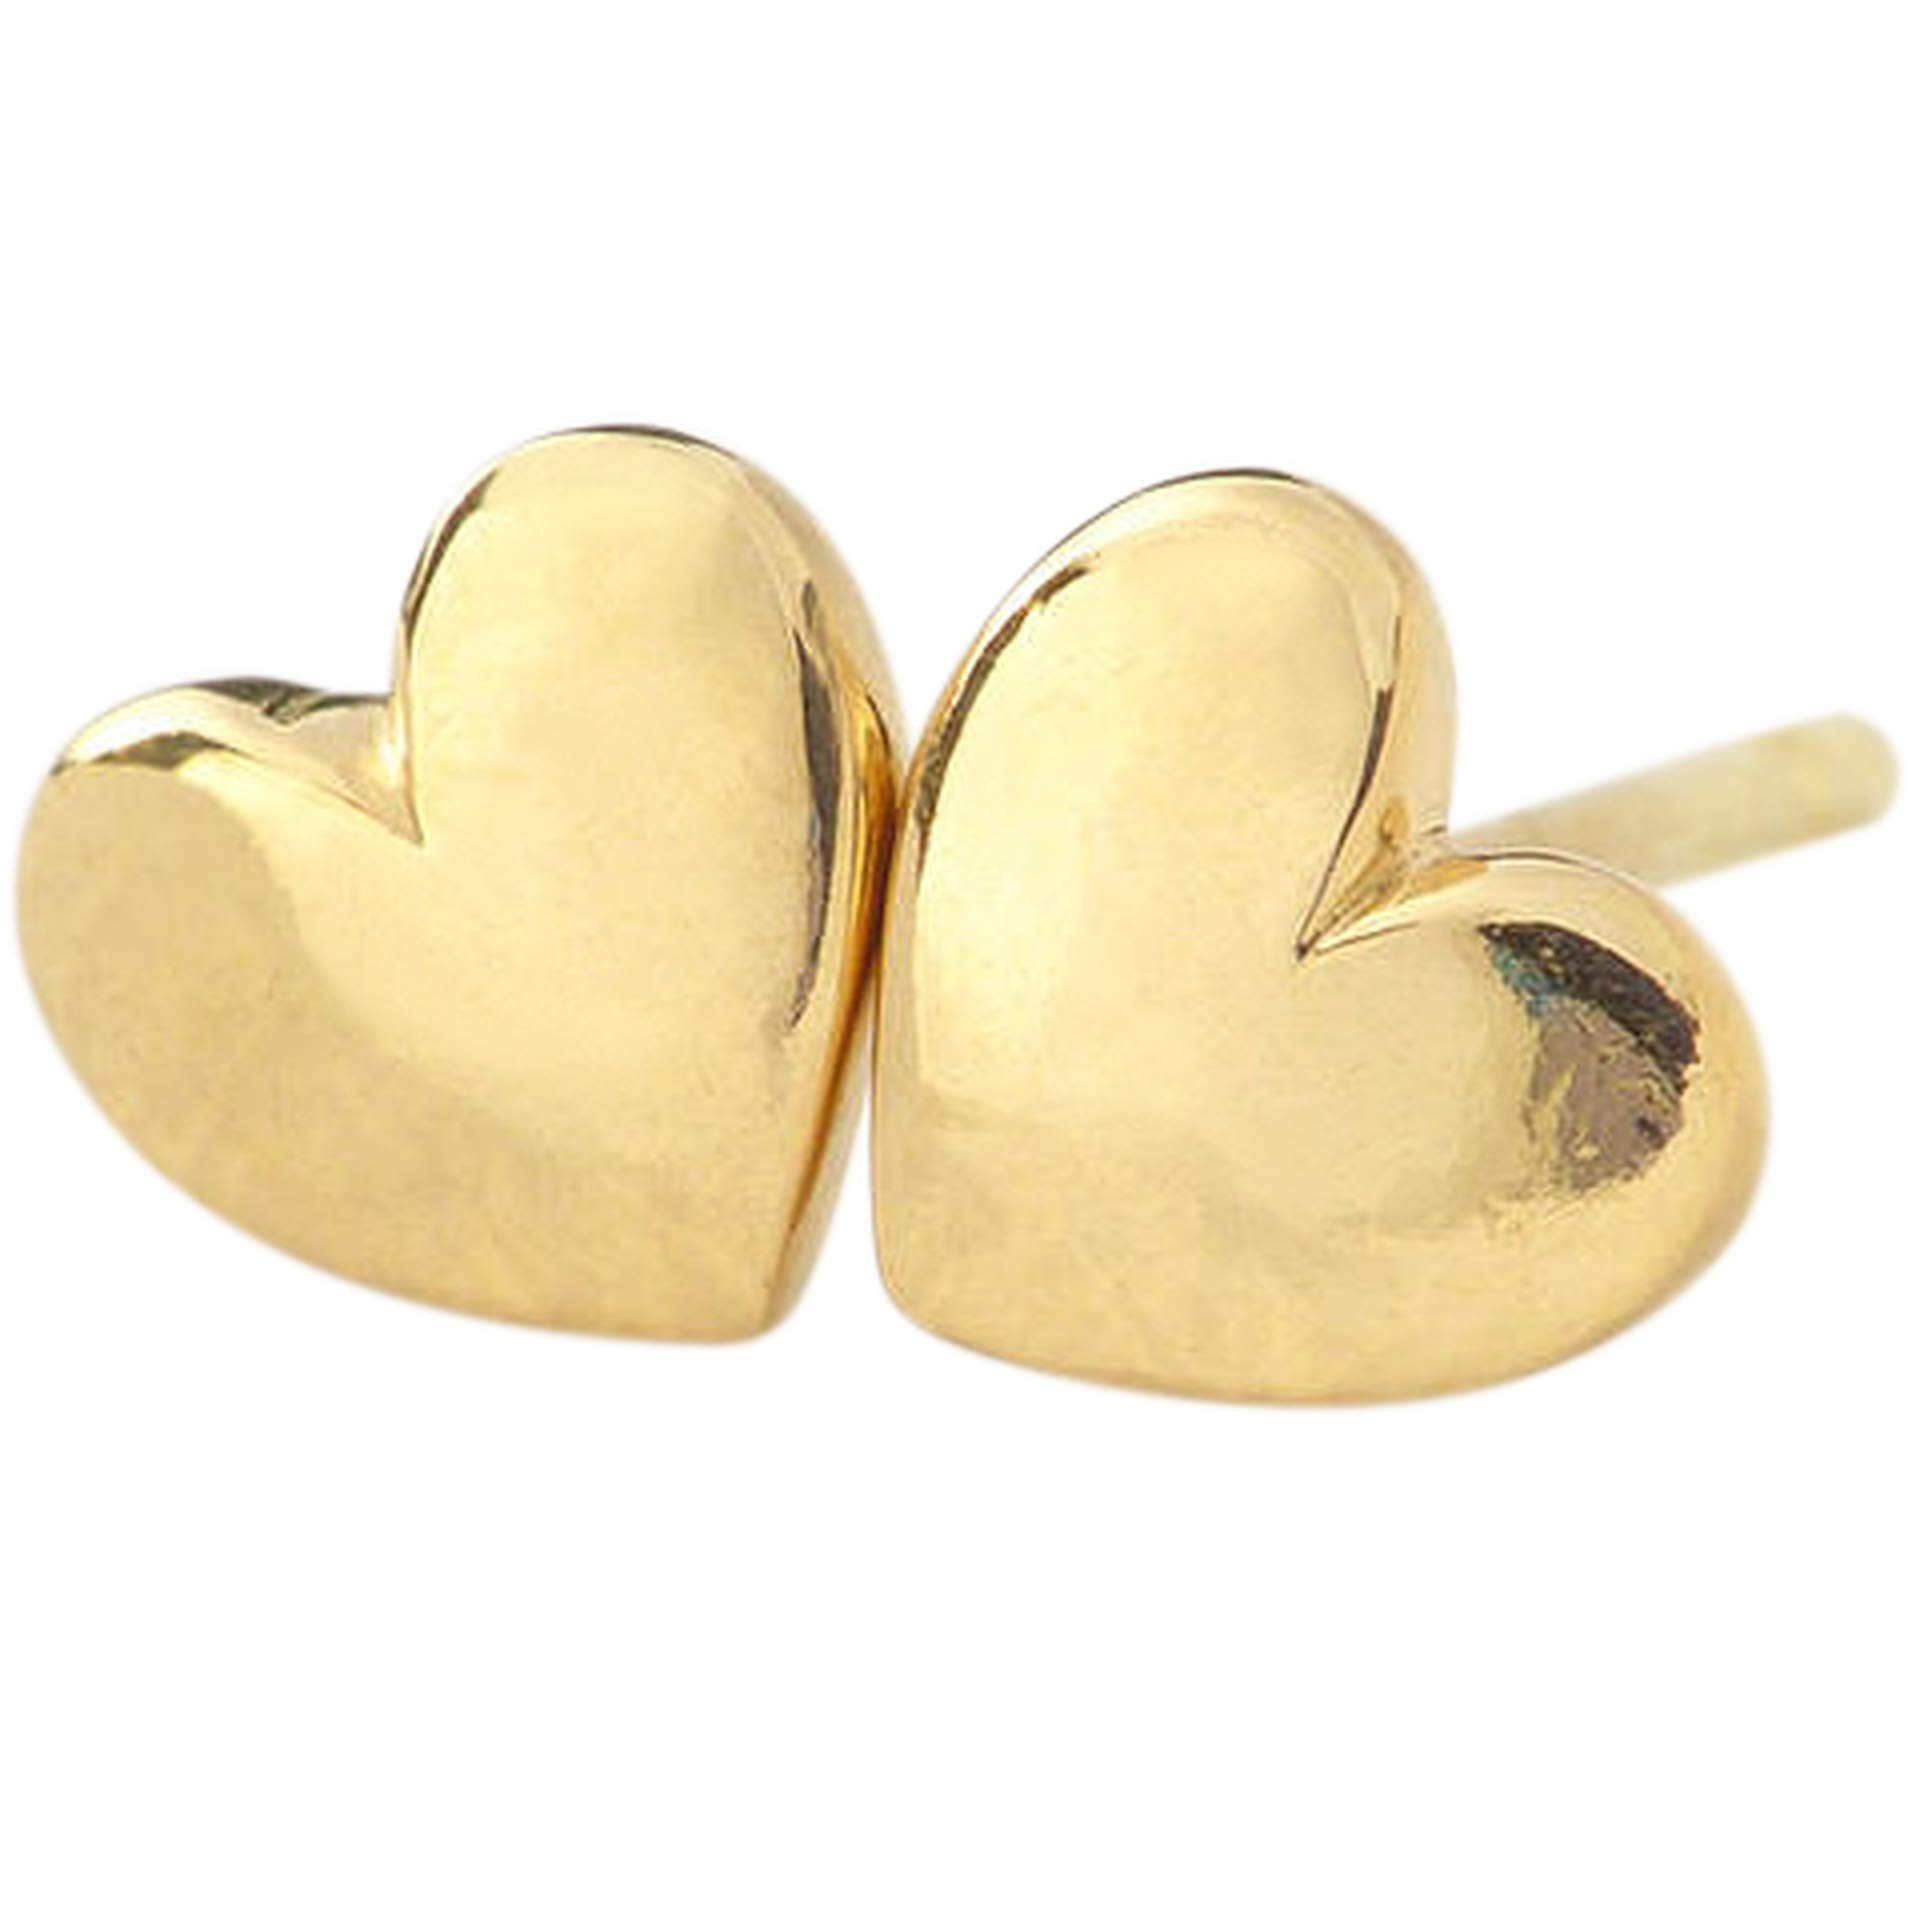 Heart Stud Earrings, 24K Gold Premium Overlay Fashion Jewelry, Hypoallergenic, Safe For Most Sensitive Ears, GUARANTEED FOR LIFE